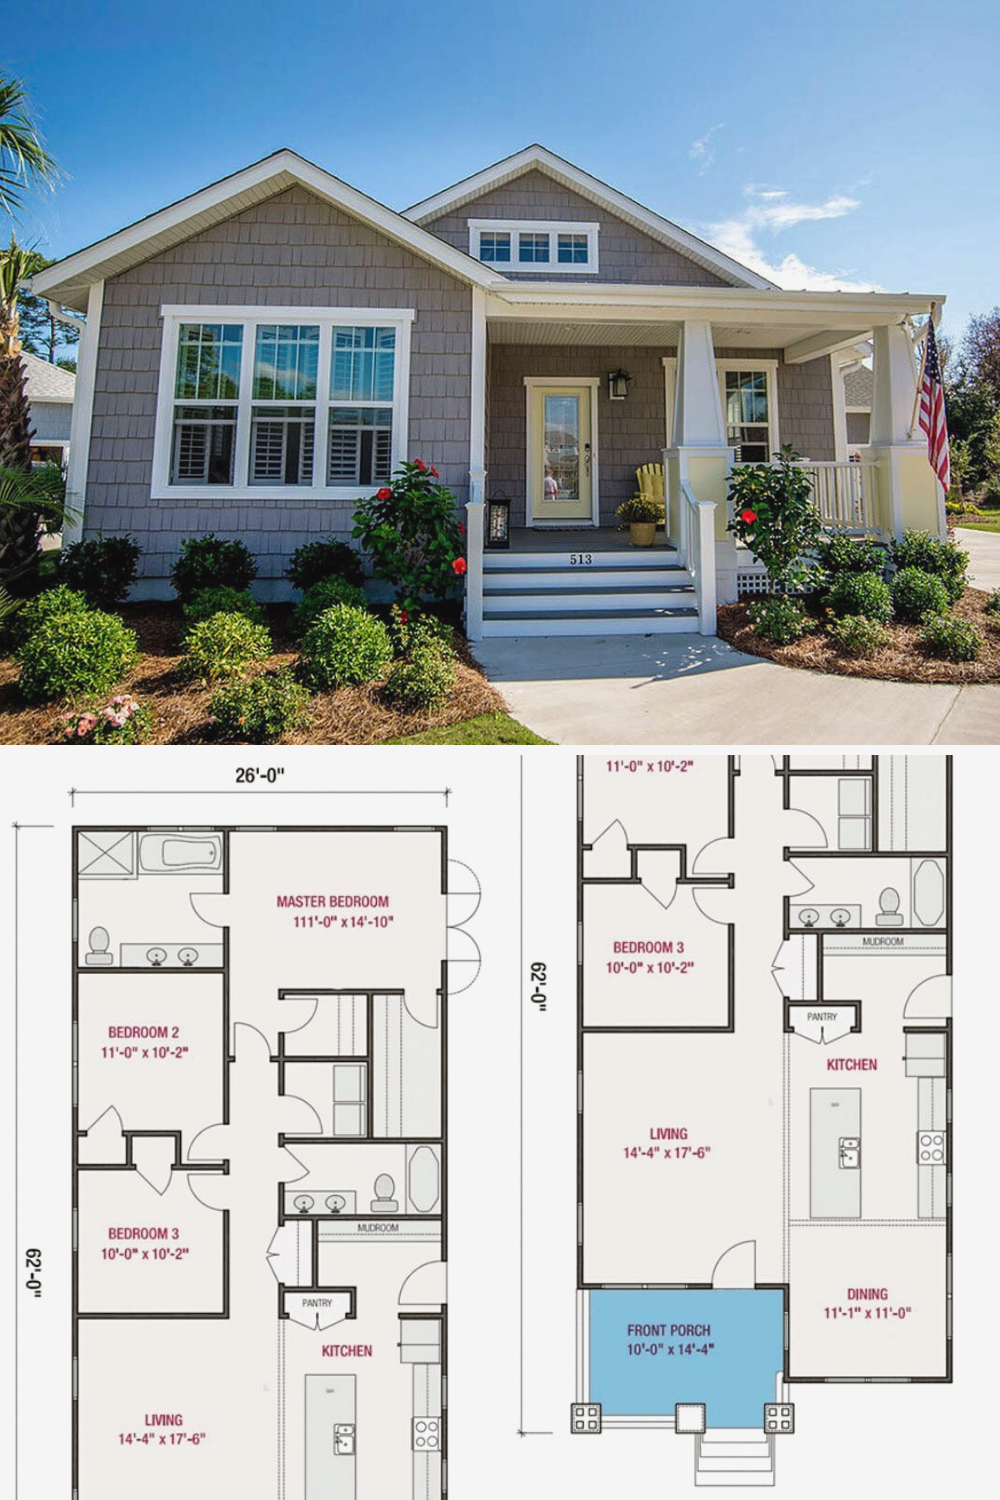 3 Bedroom Single Story Cottage Home Floor Plan Cottage Bungalow House Plans Narrow Lot House Plans Cottage House Plans